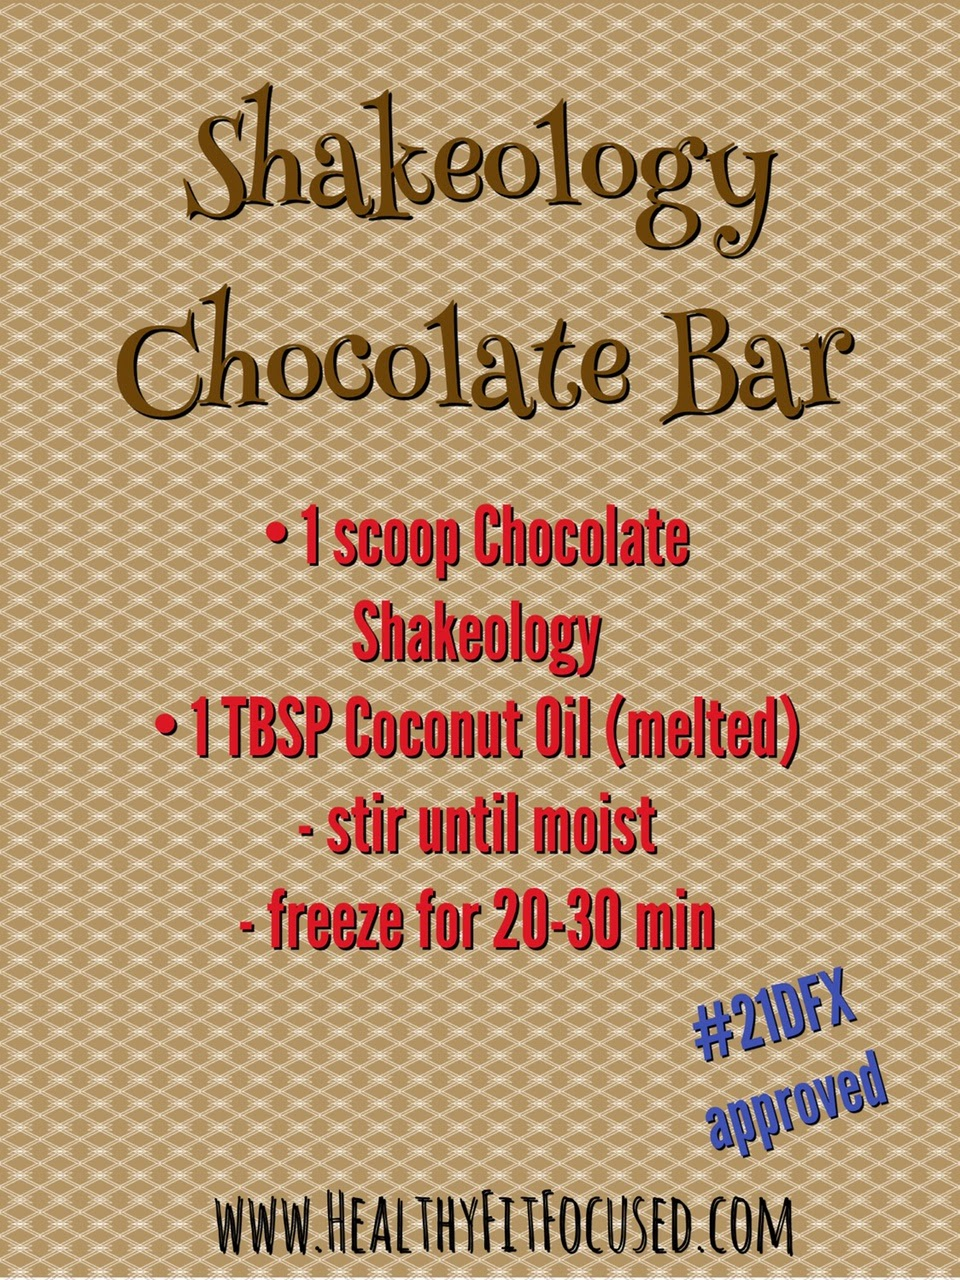 21 Day Fix Approved Chocolate Bar, Clean Eating Chocolate, Shakeology Chocolate Bar, www.HealthyFitFocused.com